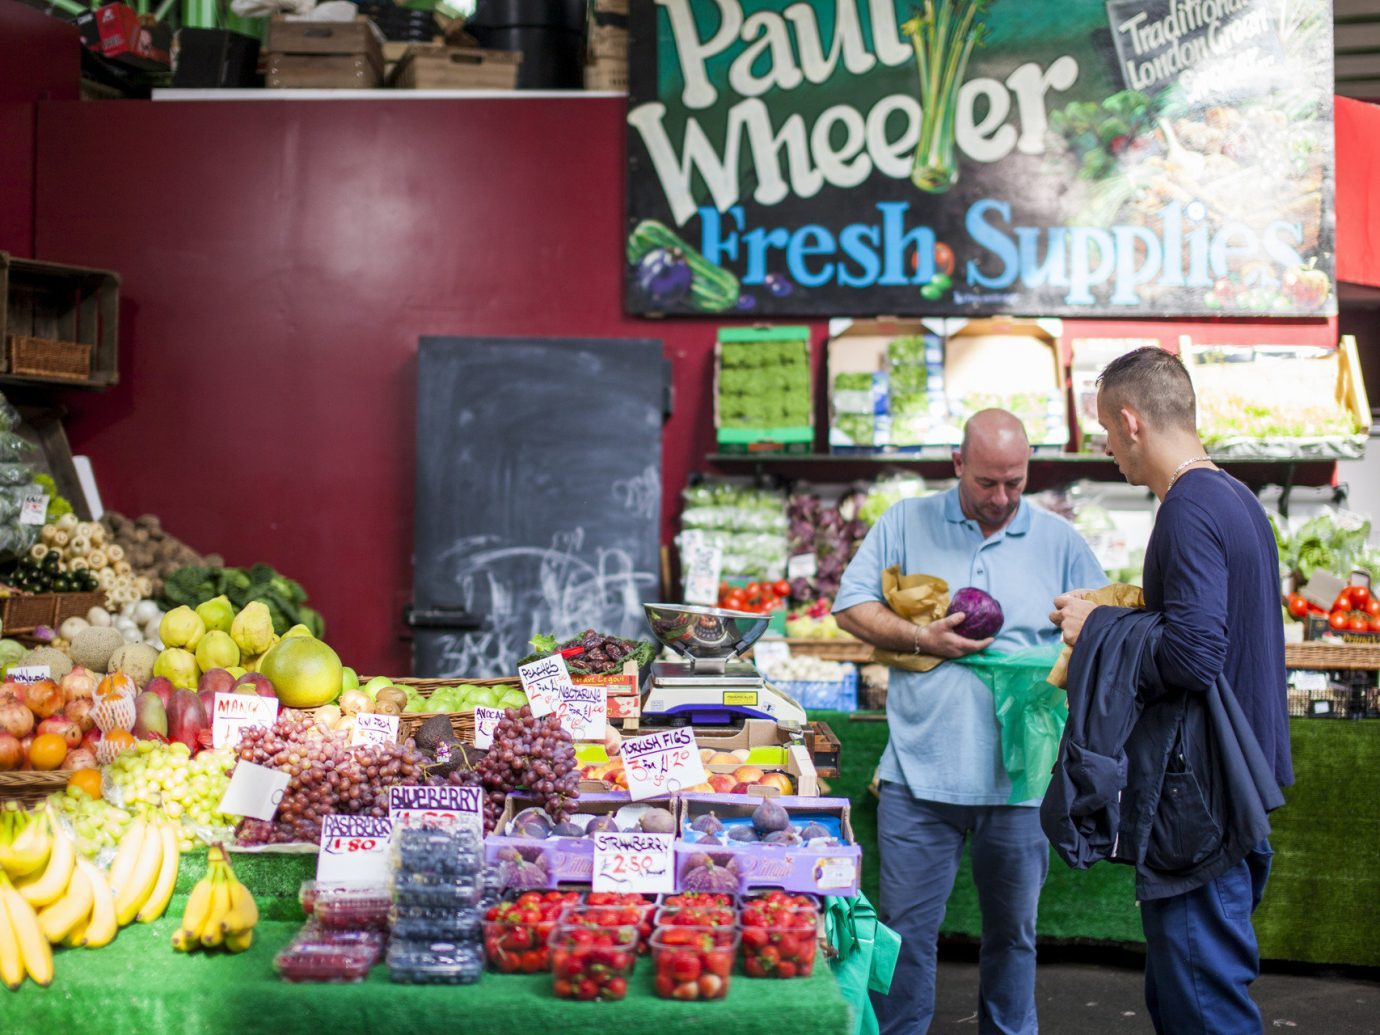 activities Budget crowd europe farmers market Food + Drink fresh interior market people produce stand marketplace fruit public space City vendor booth human settlement grocery store store greengrocer floristry food sense items vegetable sale colorful variety